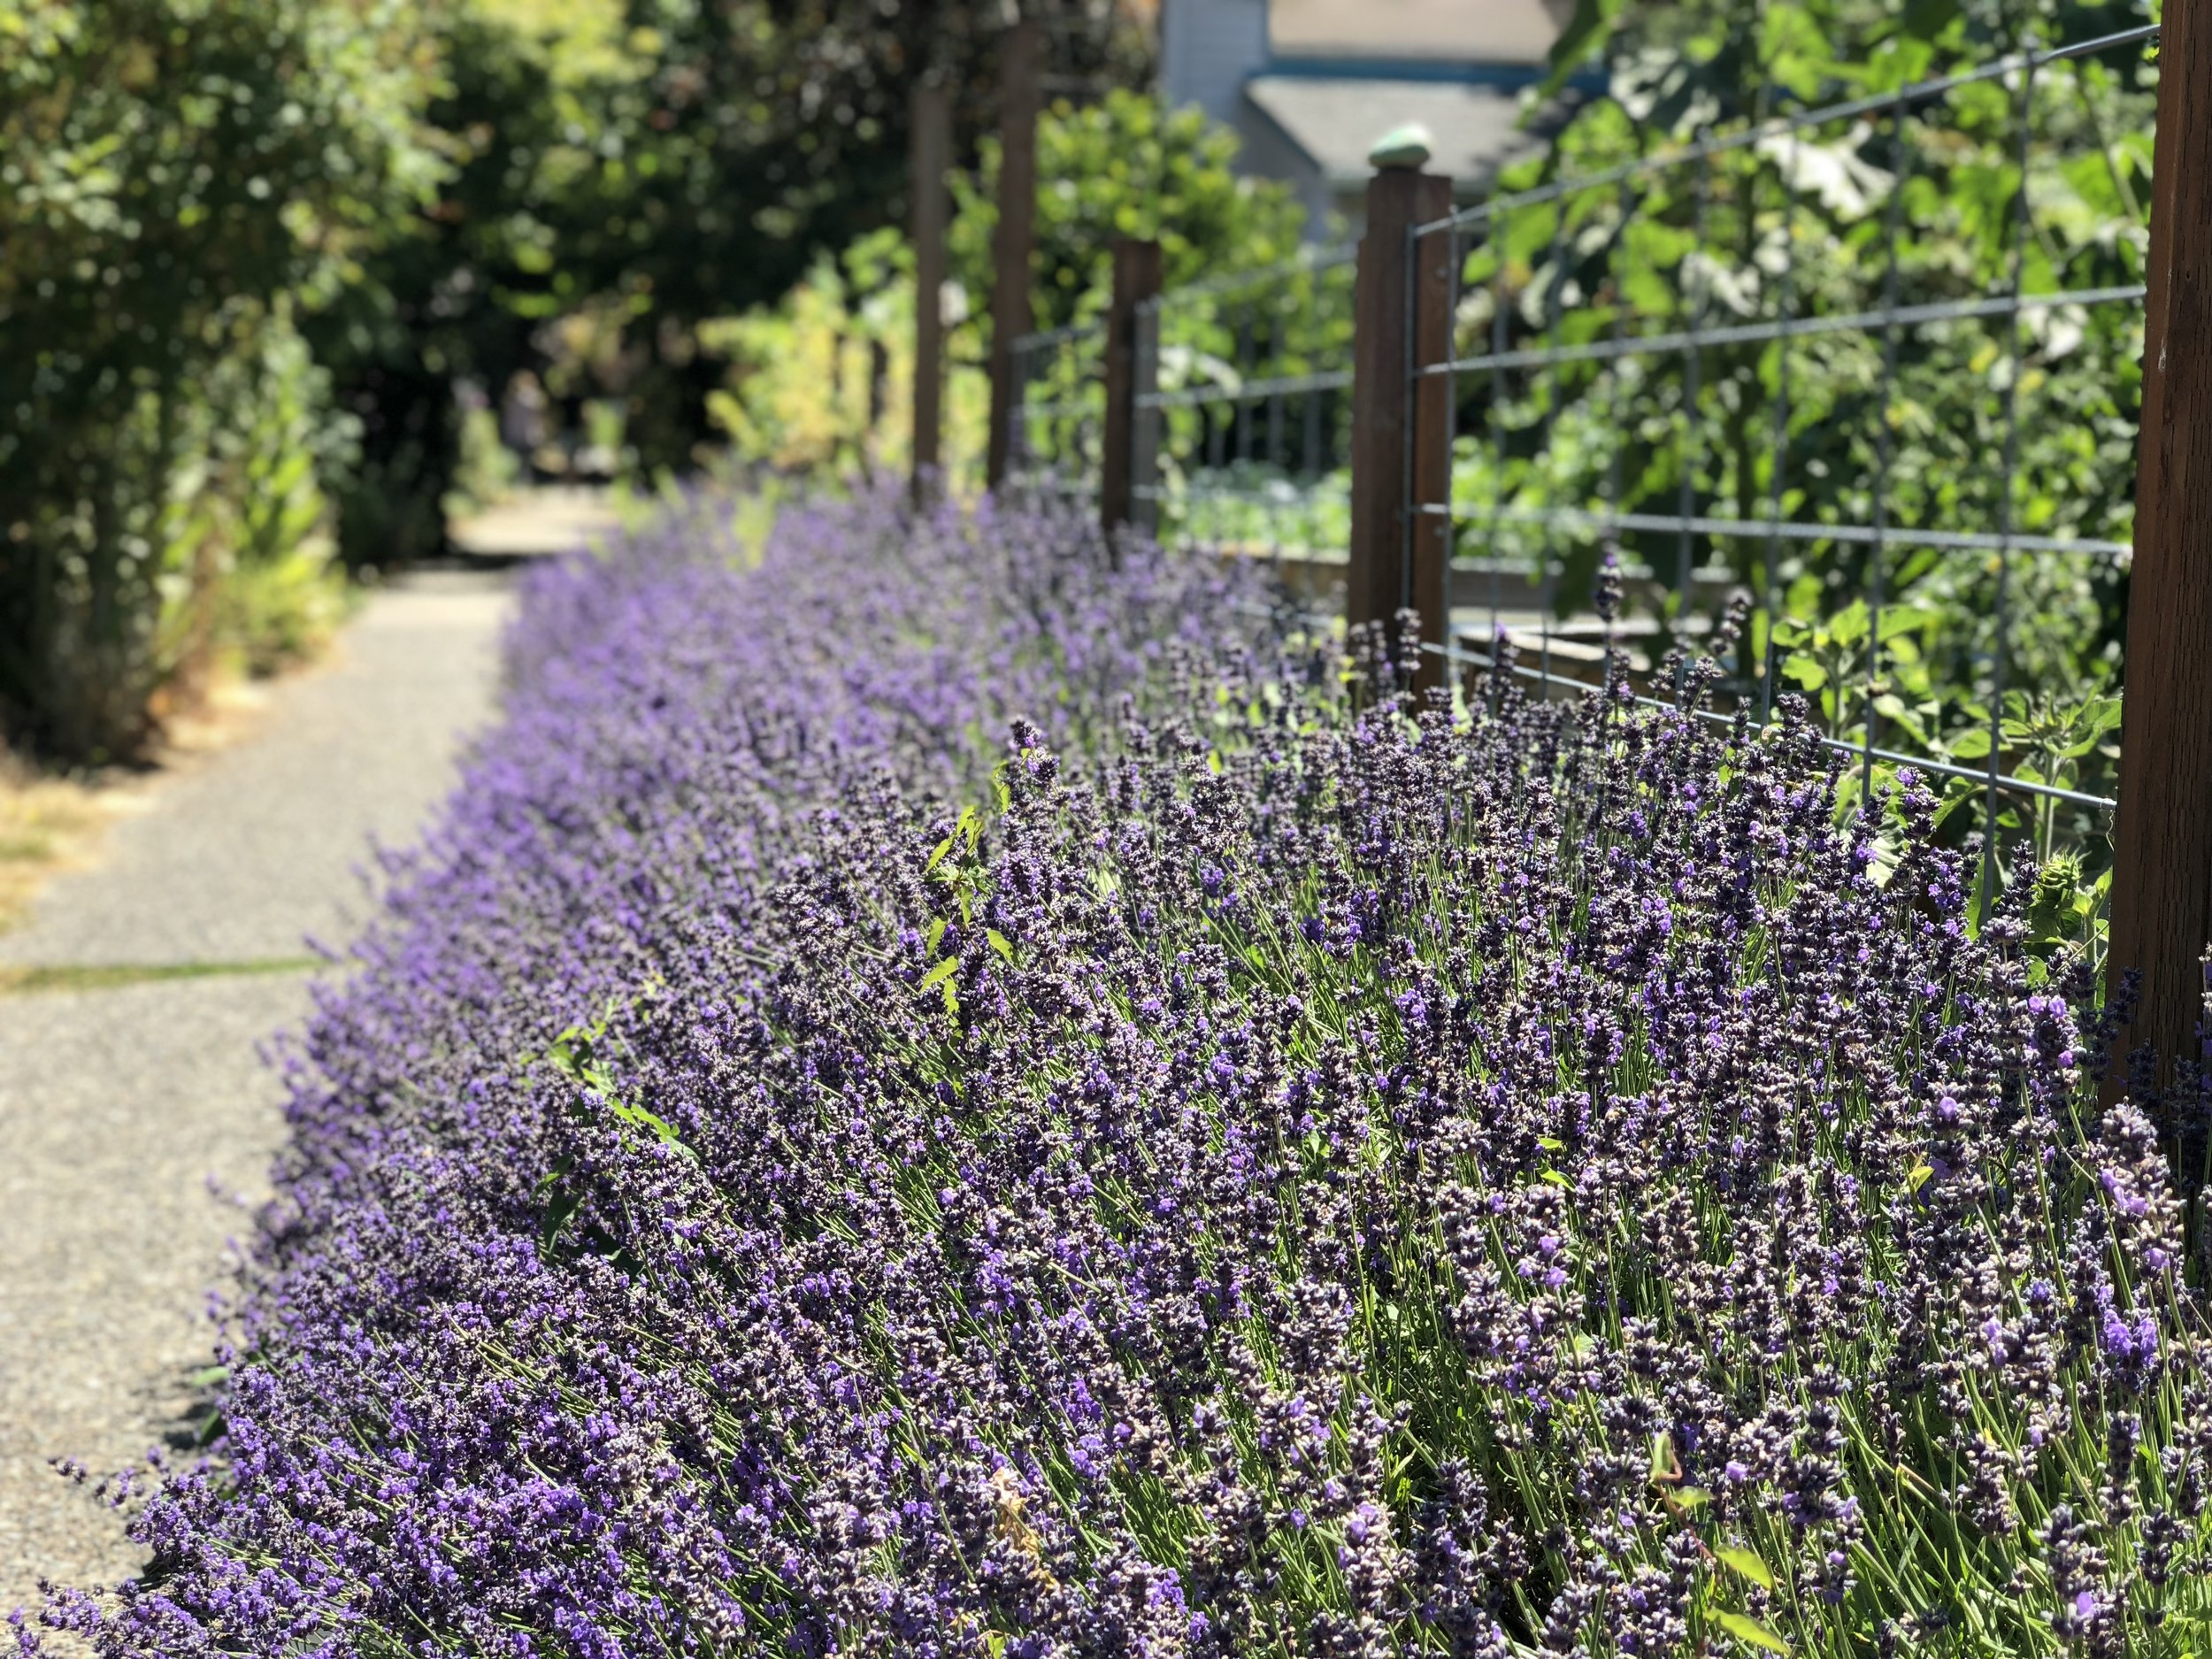 Lavender and friendly fences.